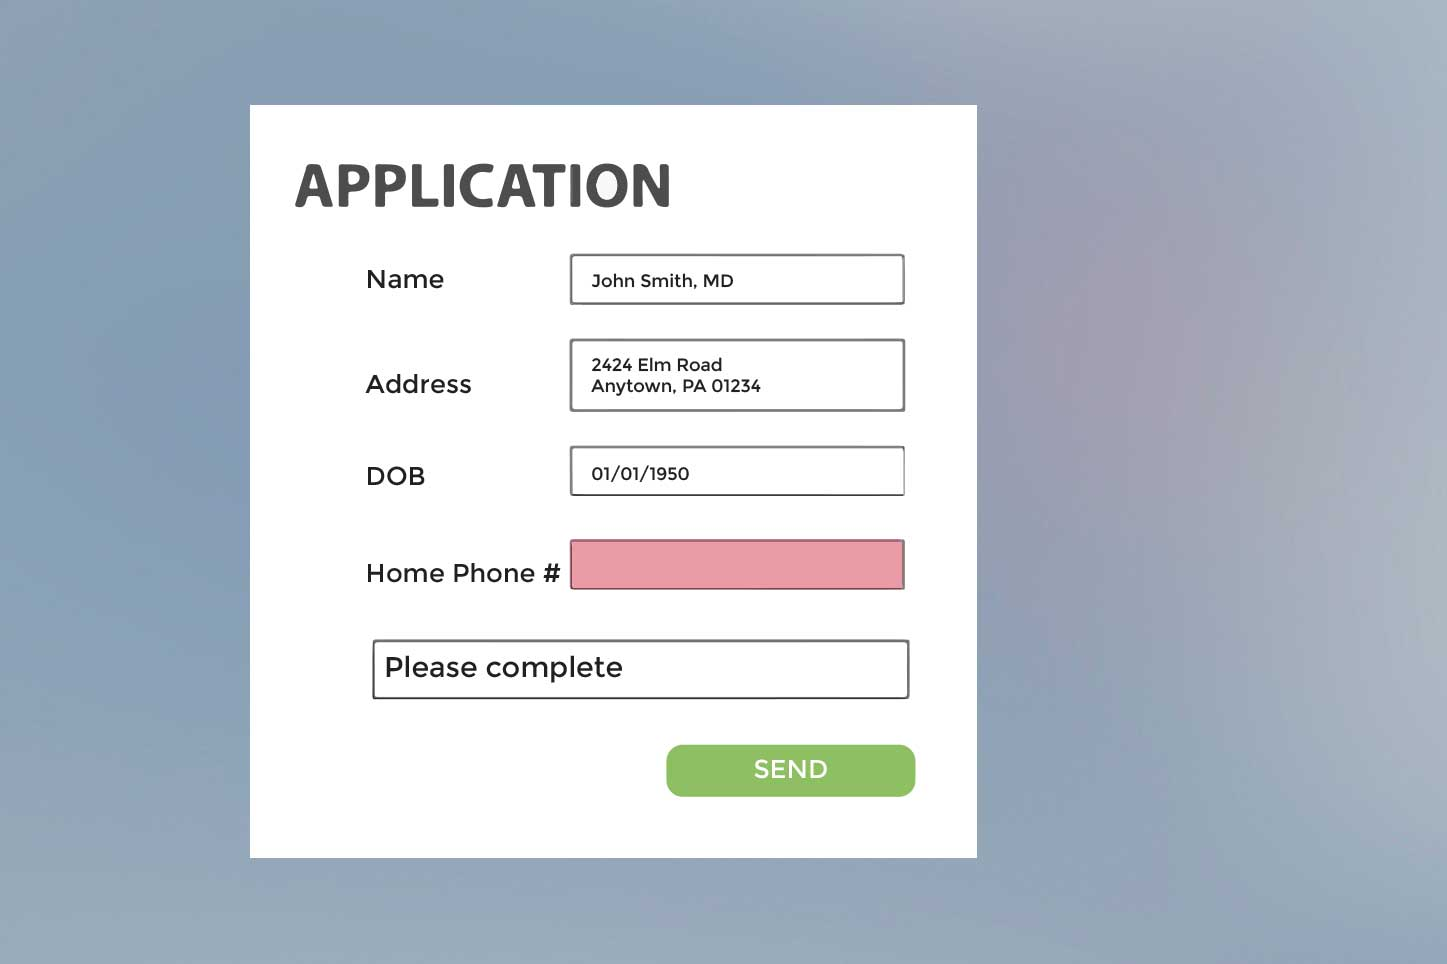 application-auto-populate